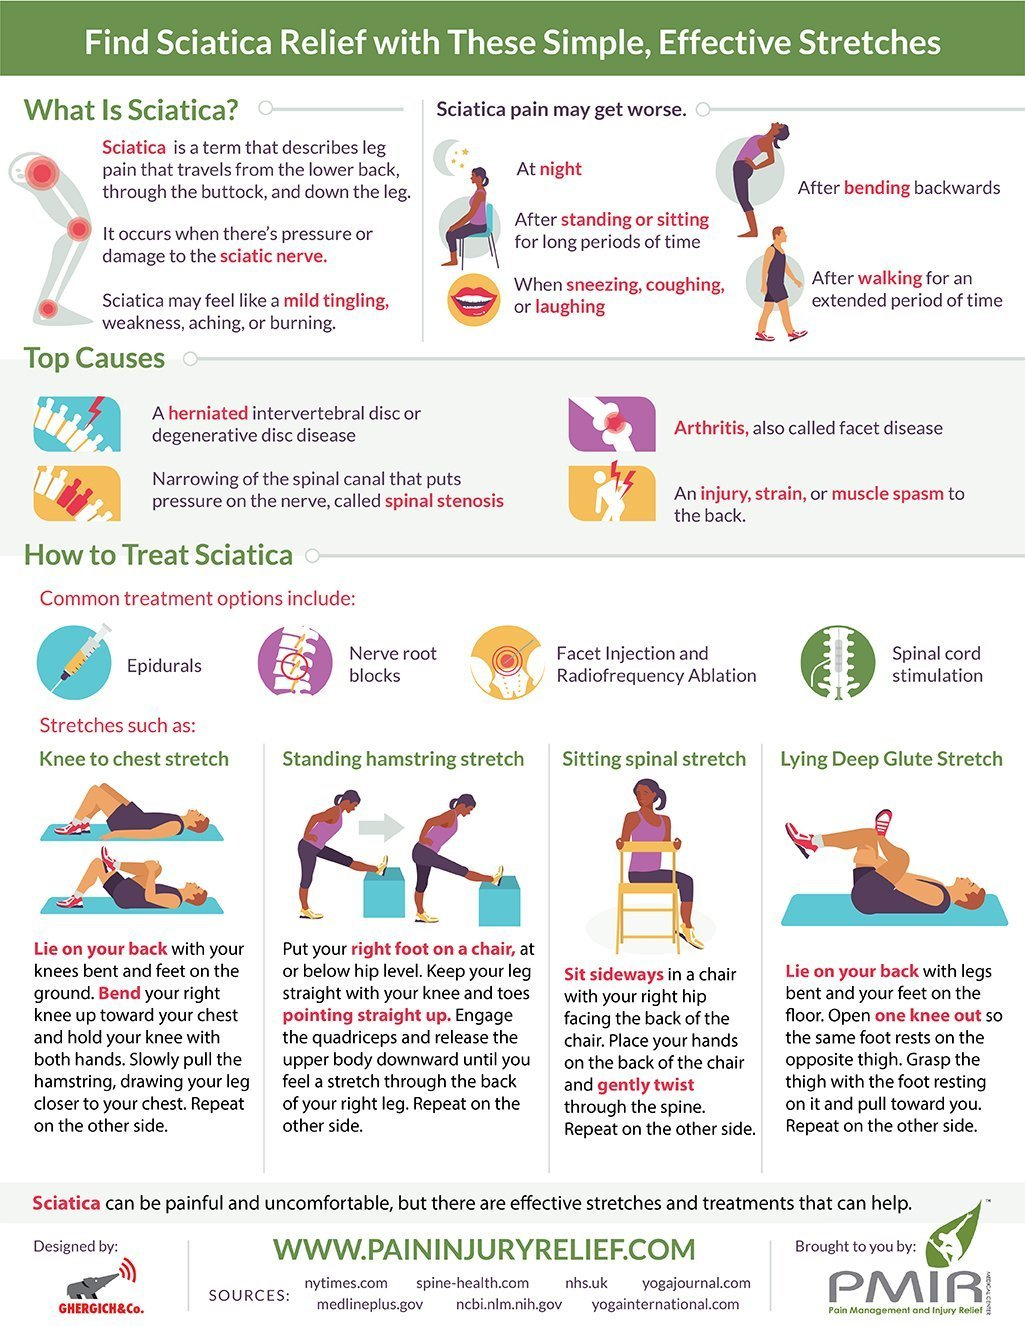 Sciatica relief with simple stretches